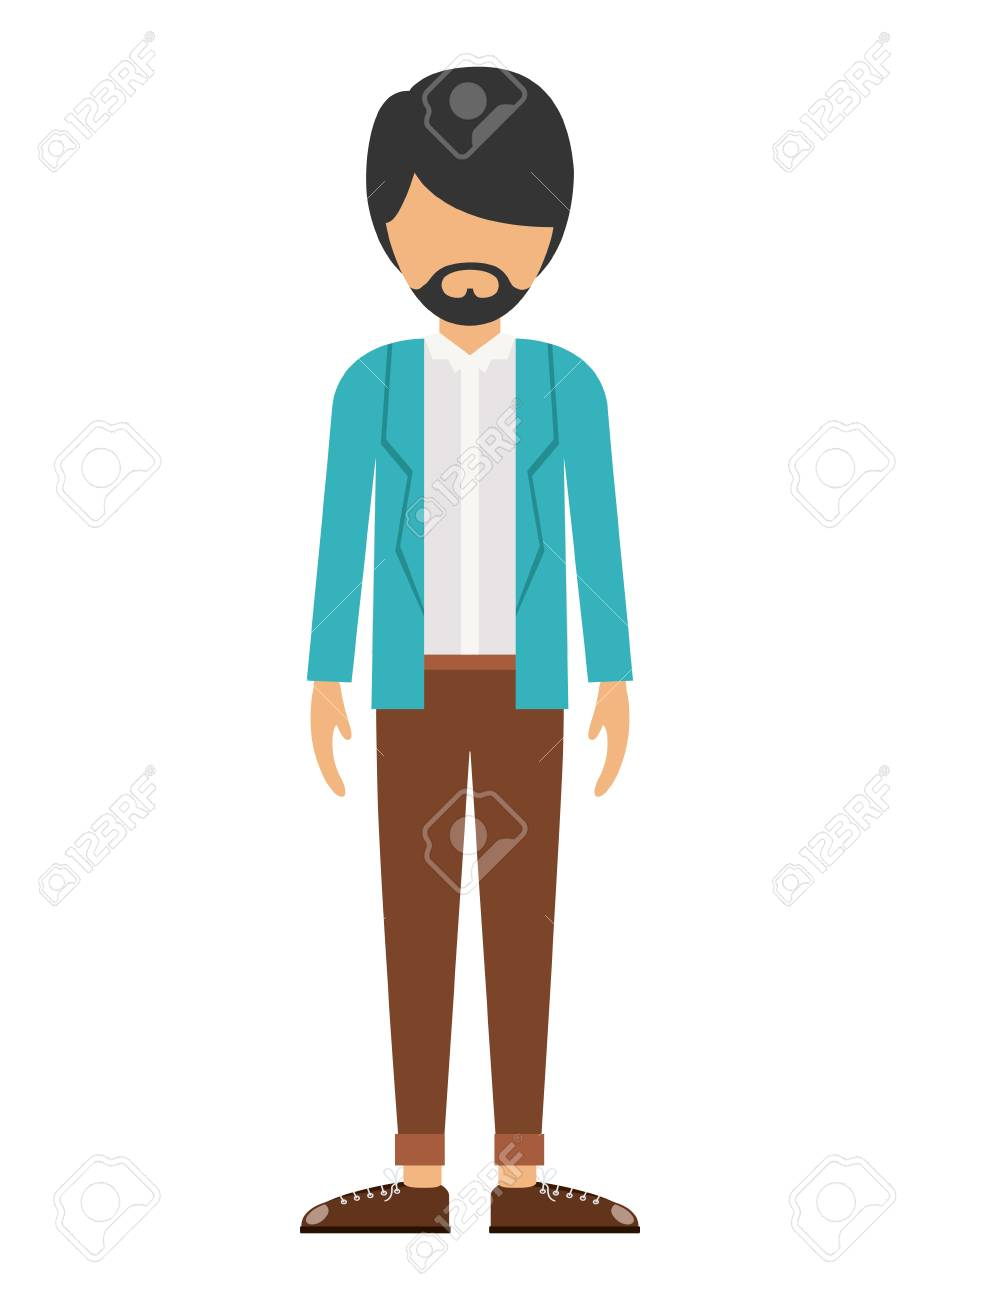 Man Male Mustache Avatar Person Human Icon Colorful And Flat Royalty Free Cliparts Vectors And Stock Illustration Image 110222082 Class icon business people meeting icon human pictos icon. man male mustache avatar person human icon colorful and flat